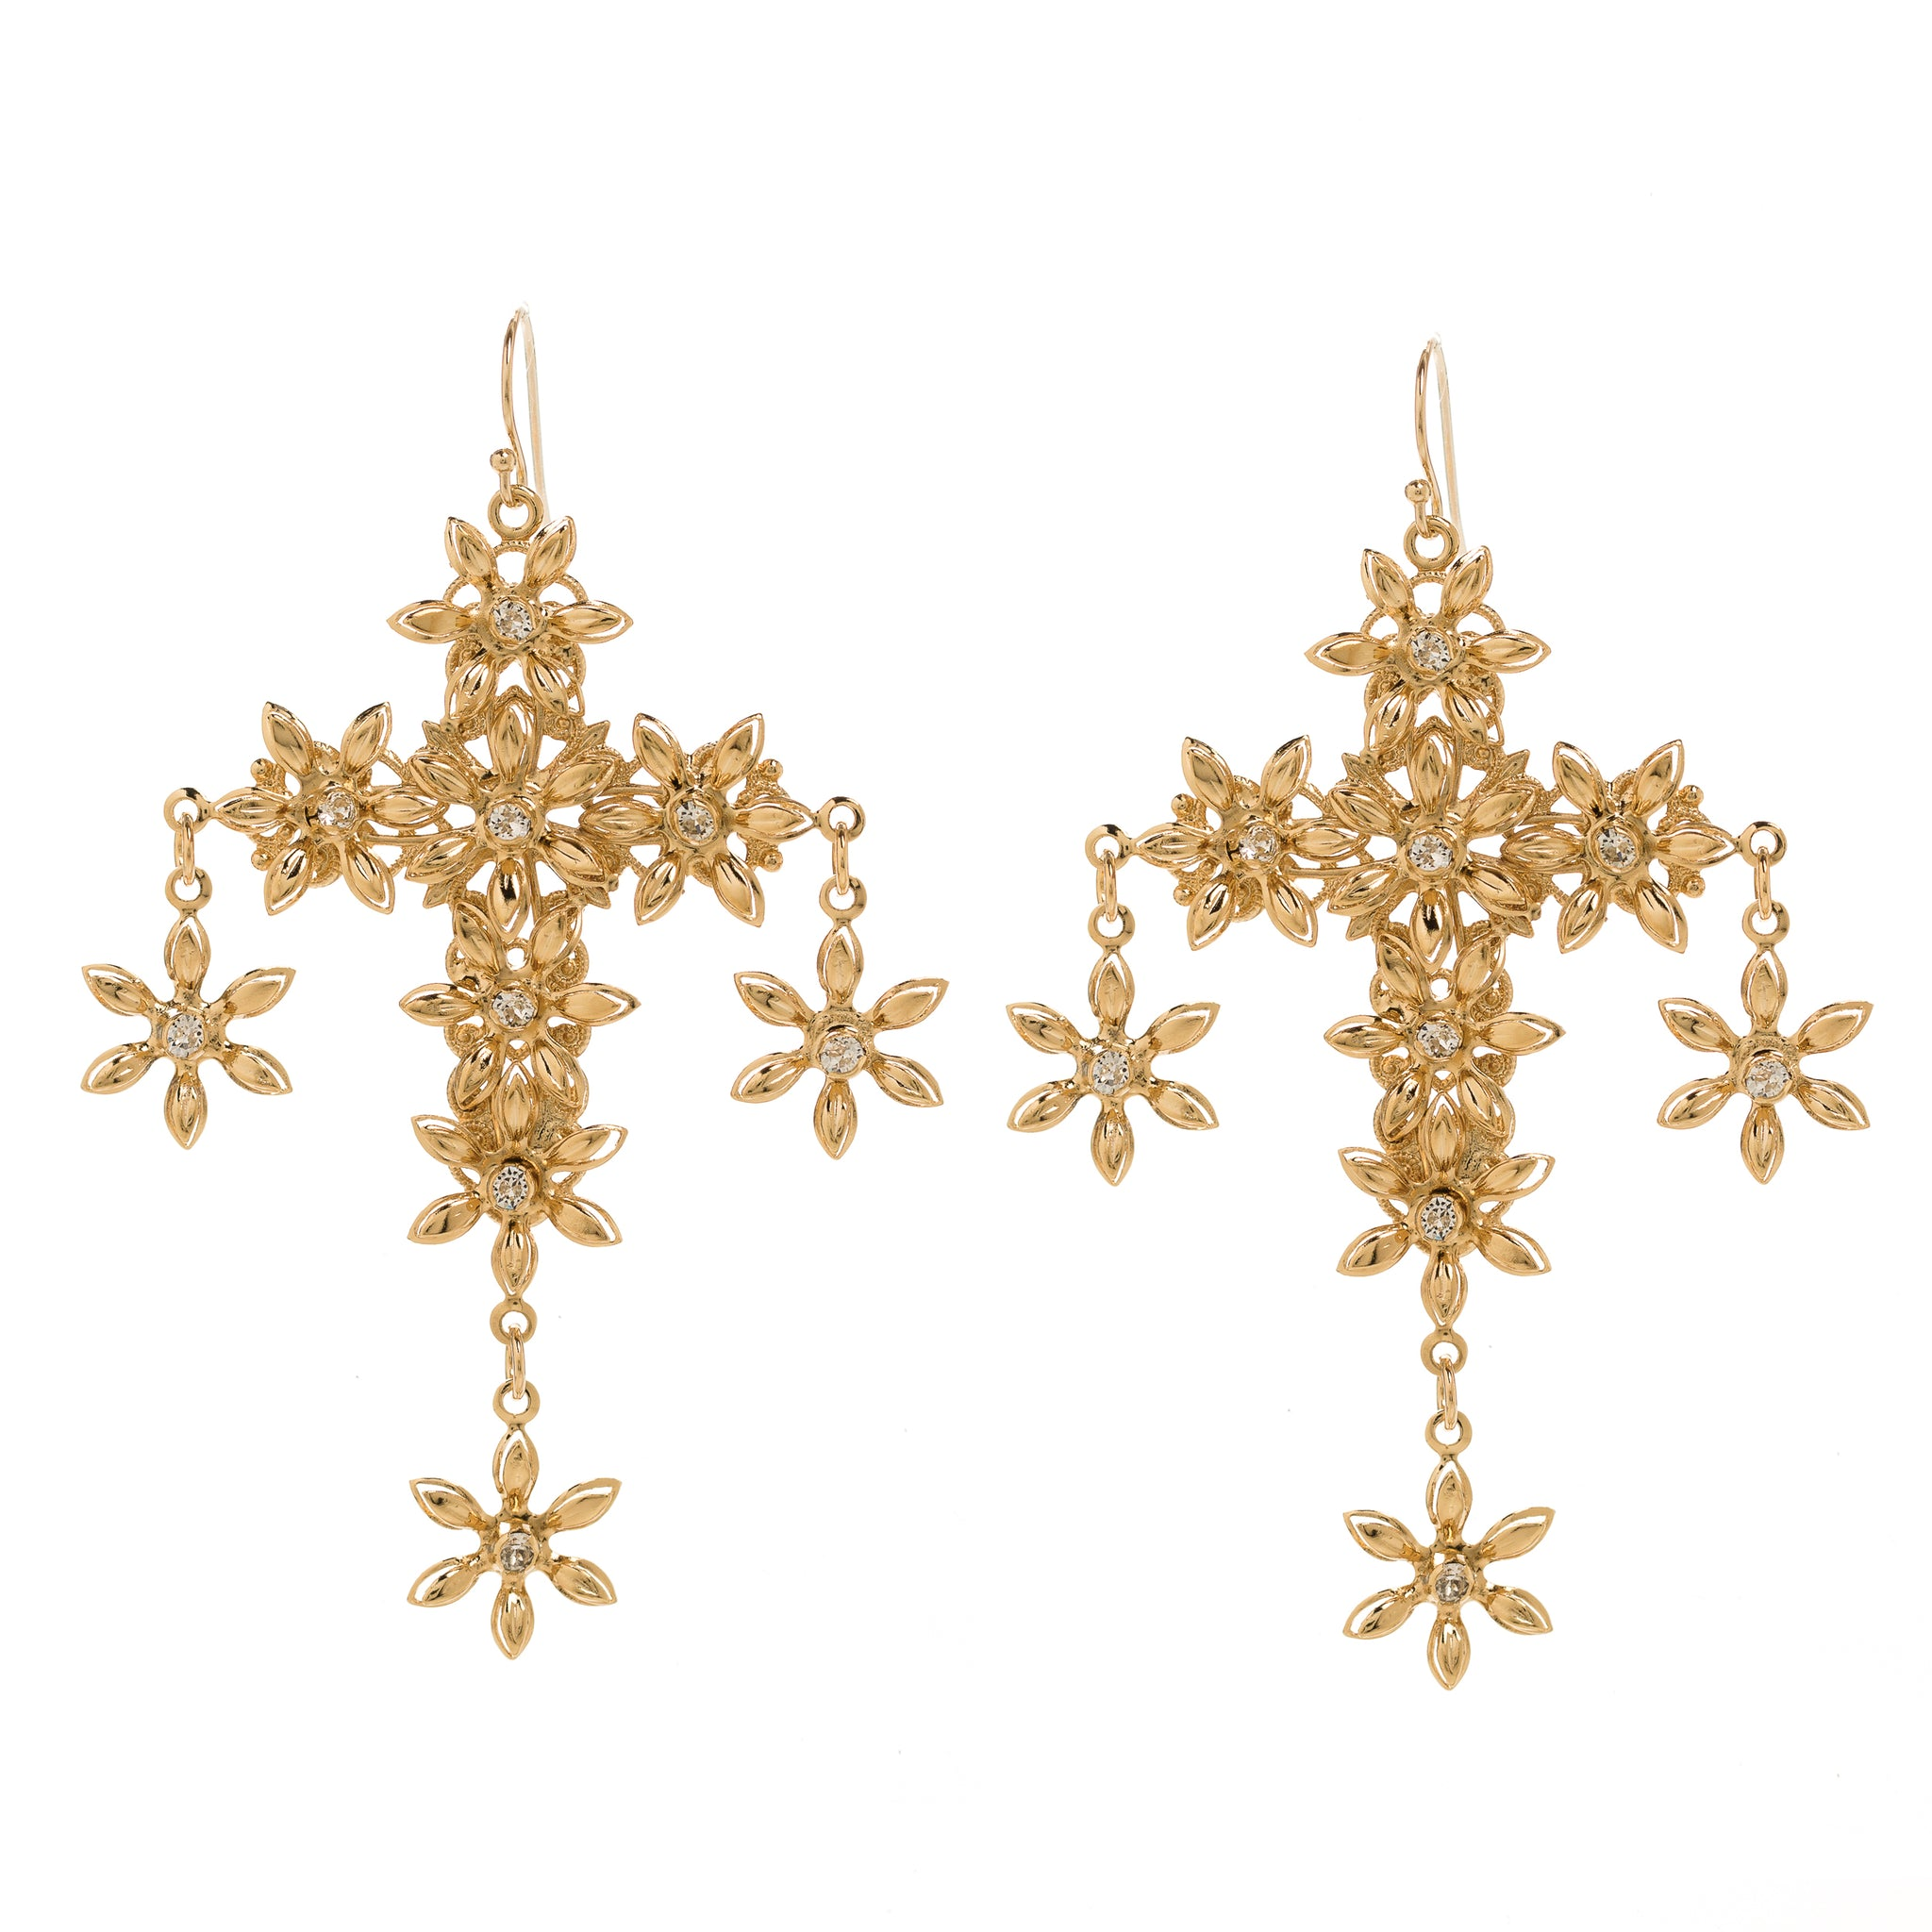 Chloe Earrings in Gold